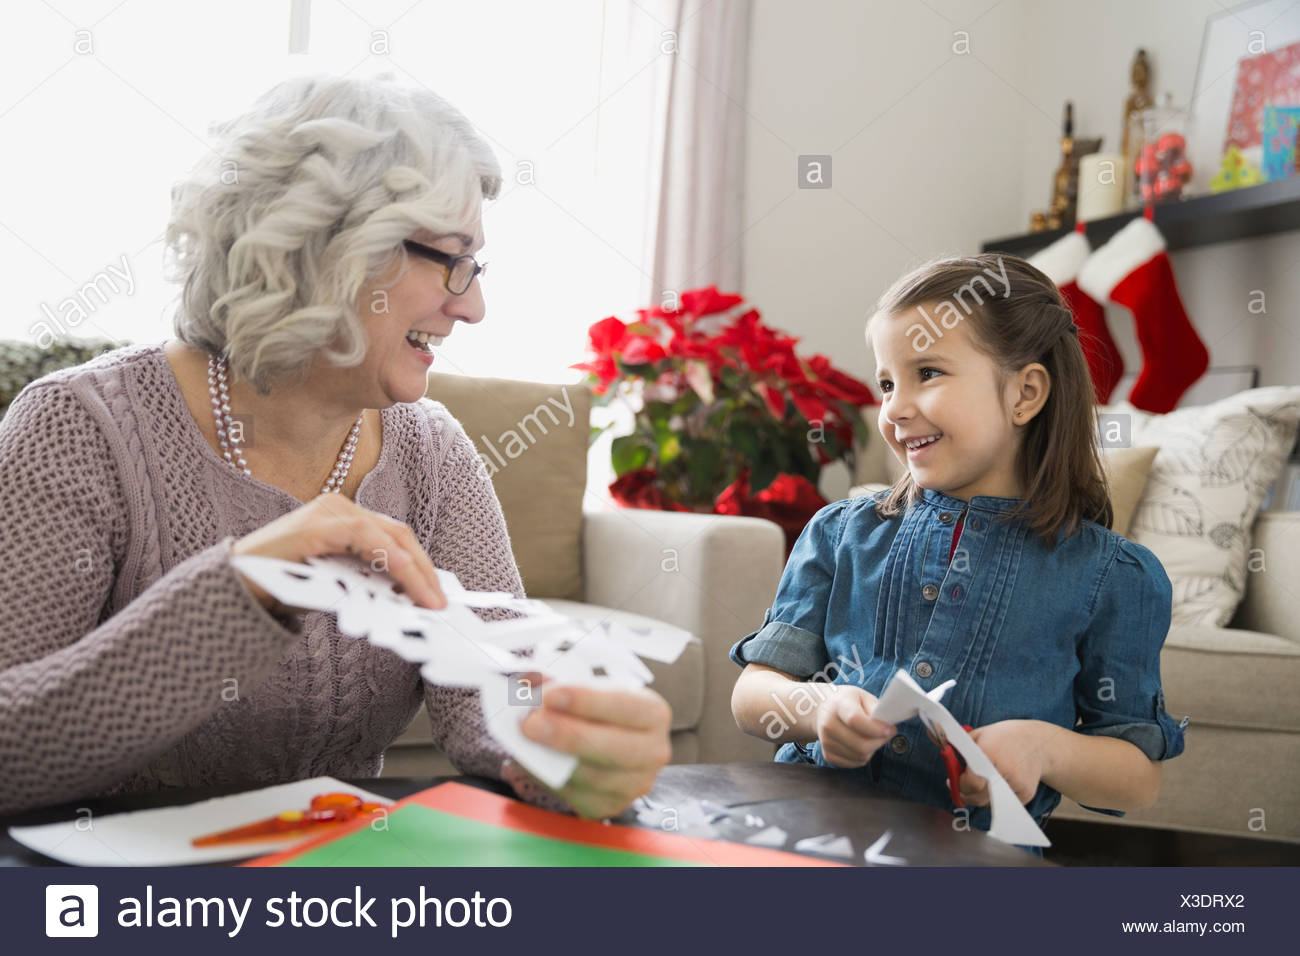 Grandmother and granddaughter making paper snowflakes - Stock Image